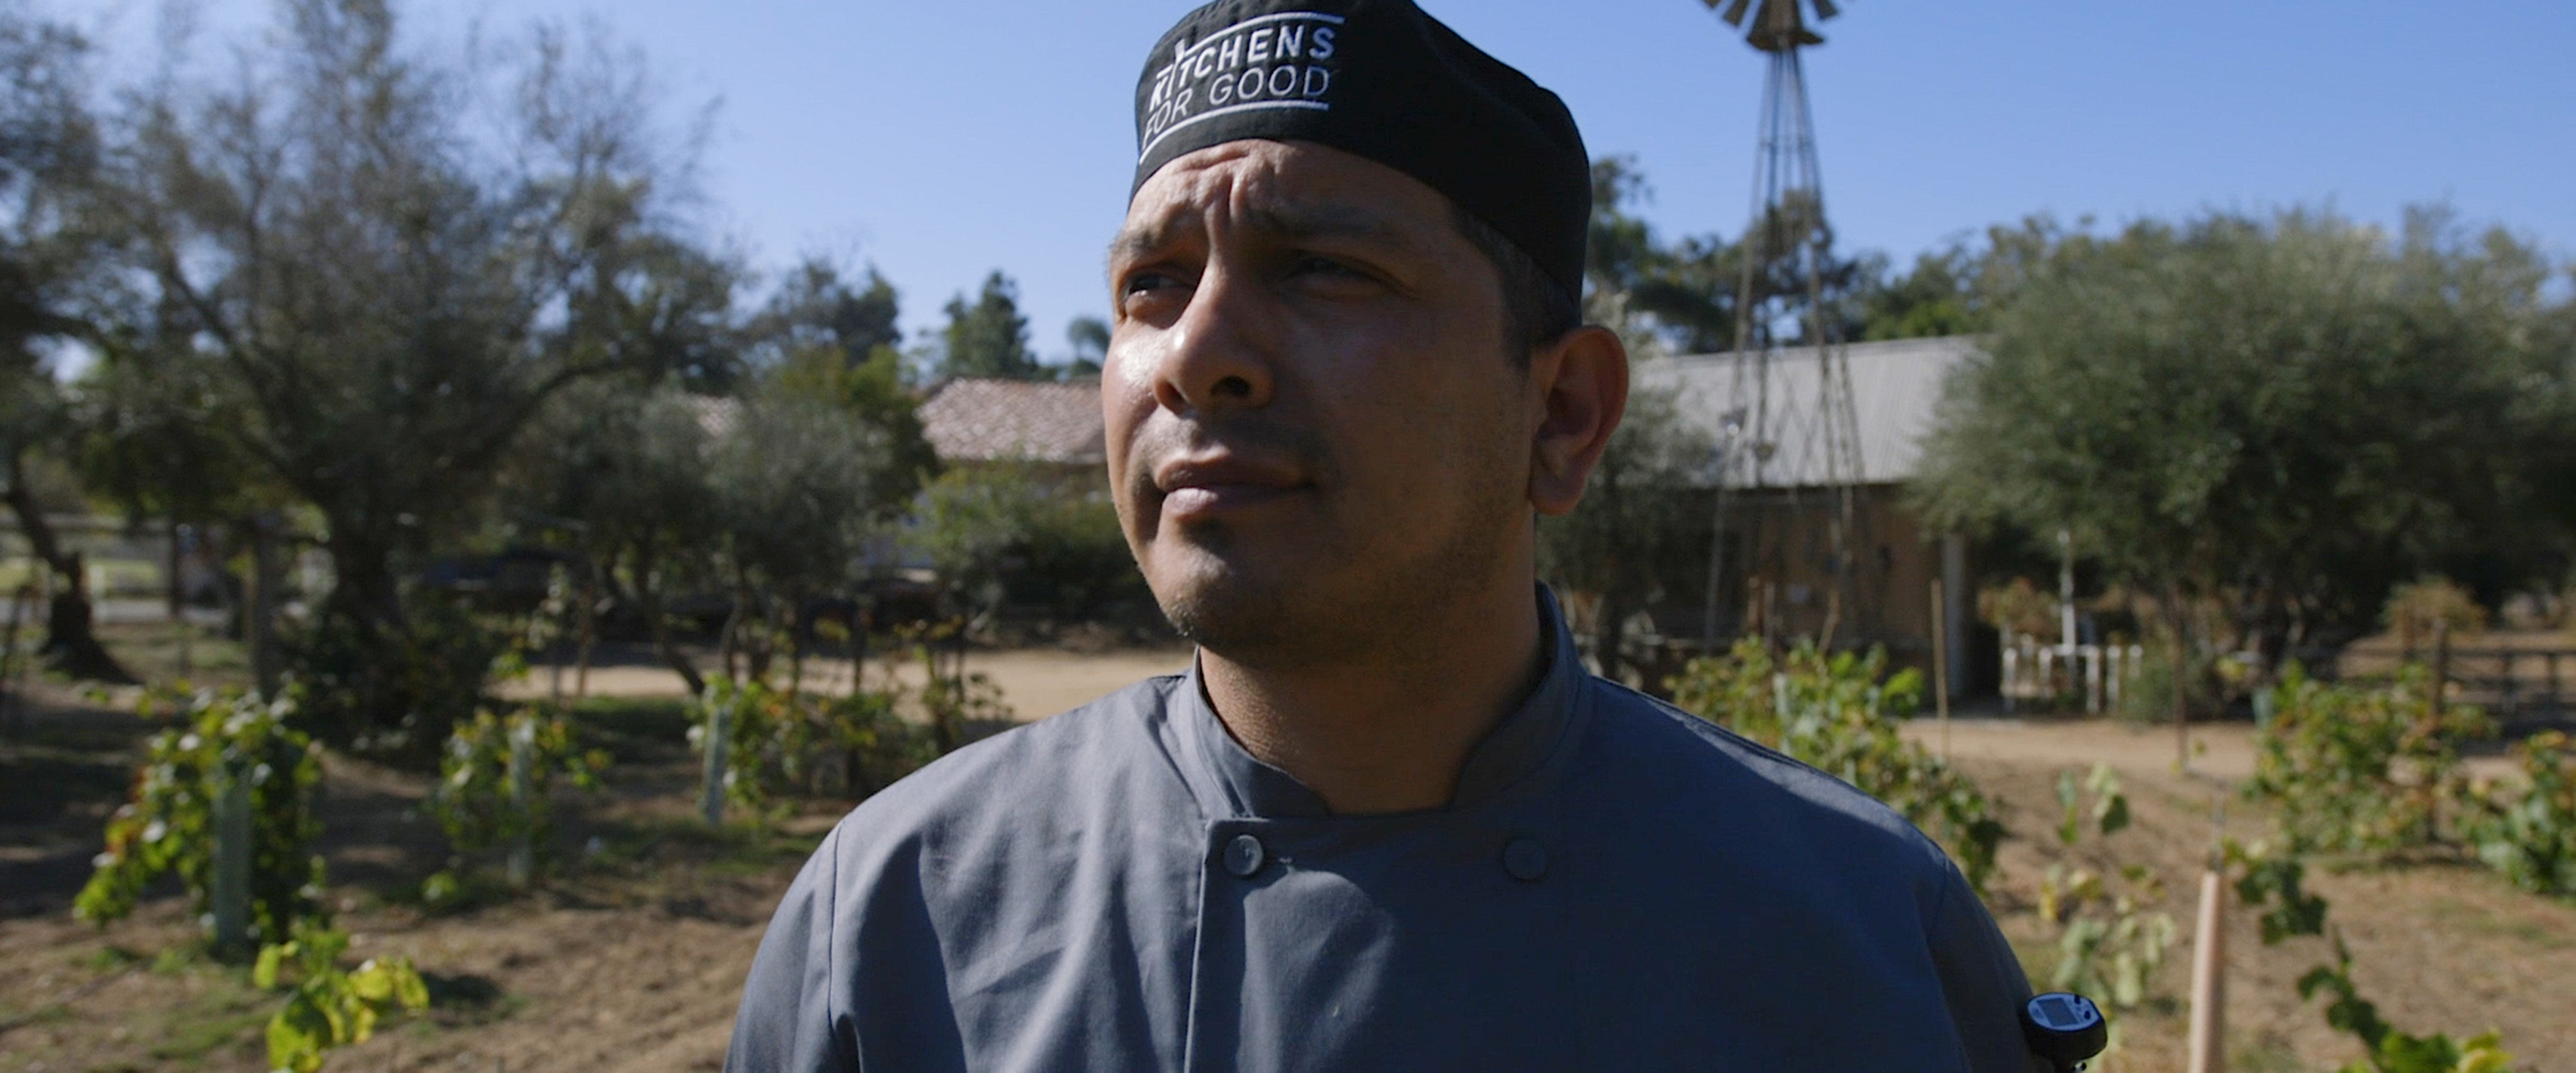 A Second Chance Through Food: Ricky Barrero and Kitchens for Good